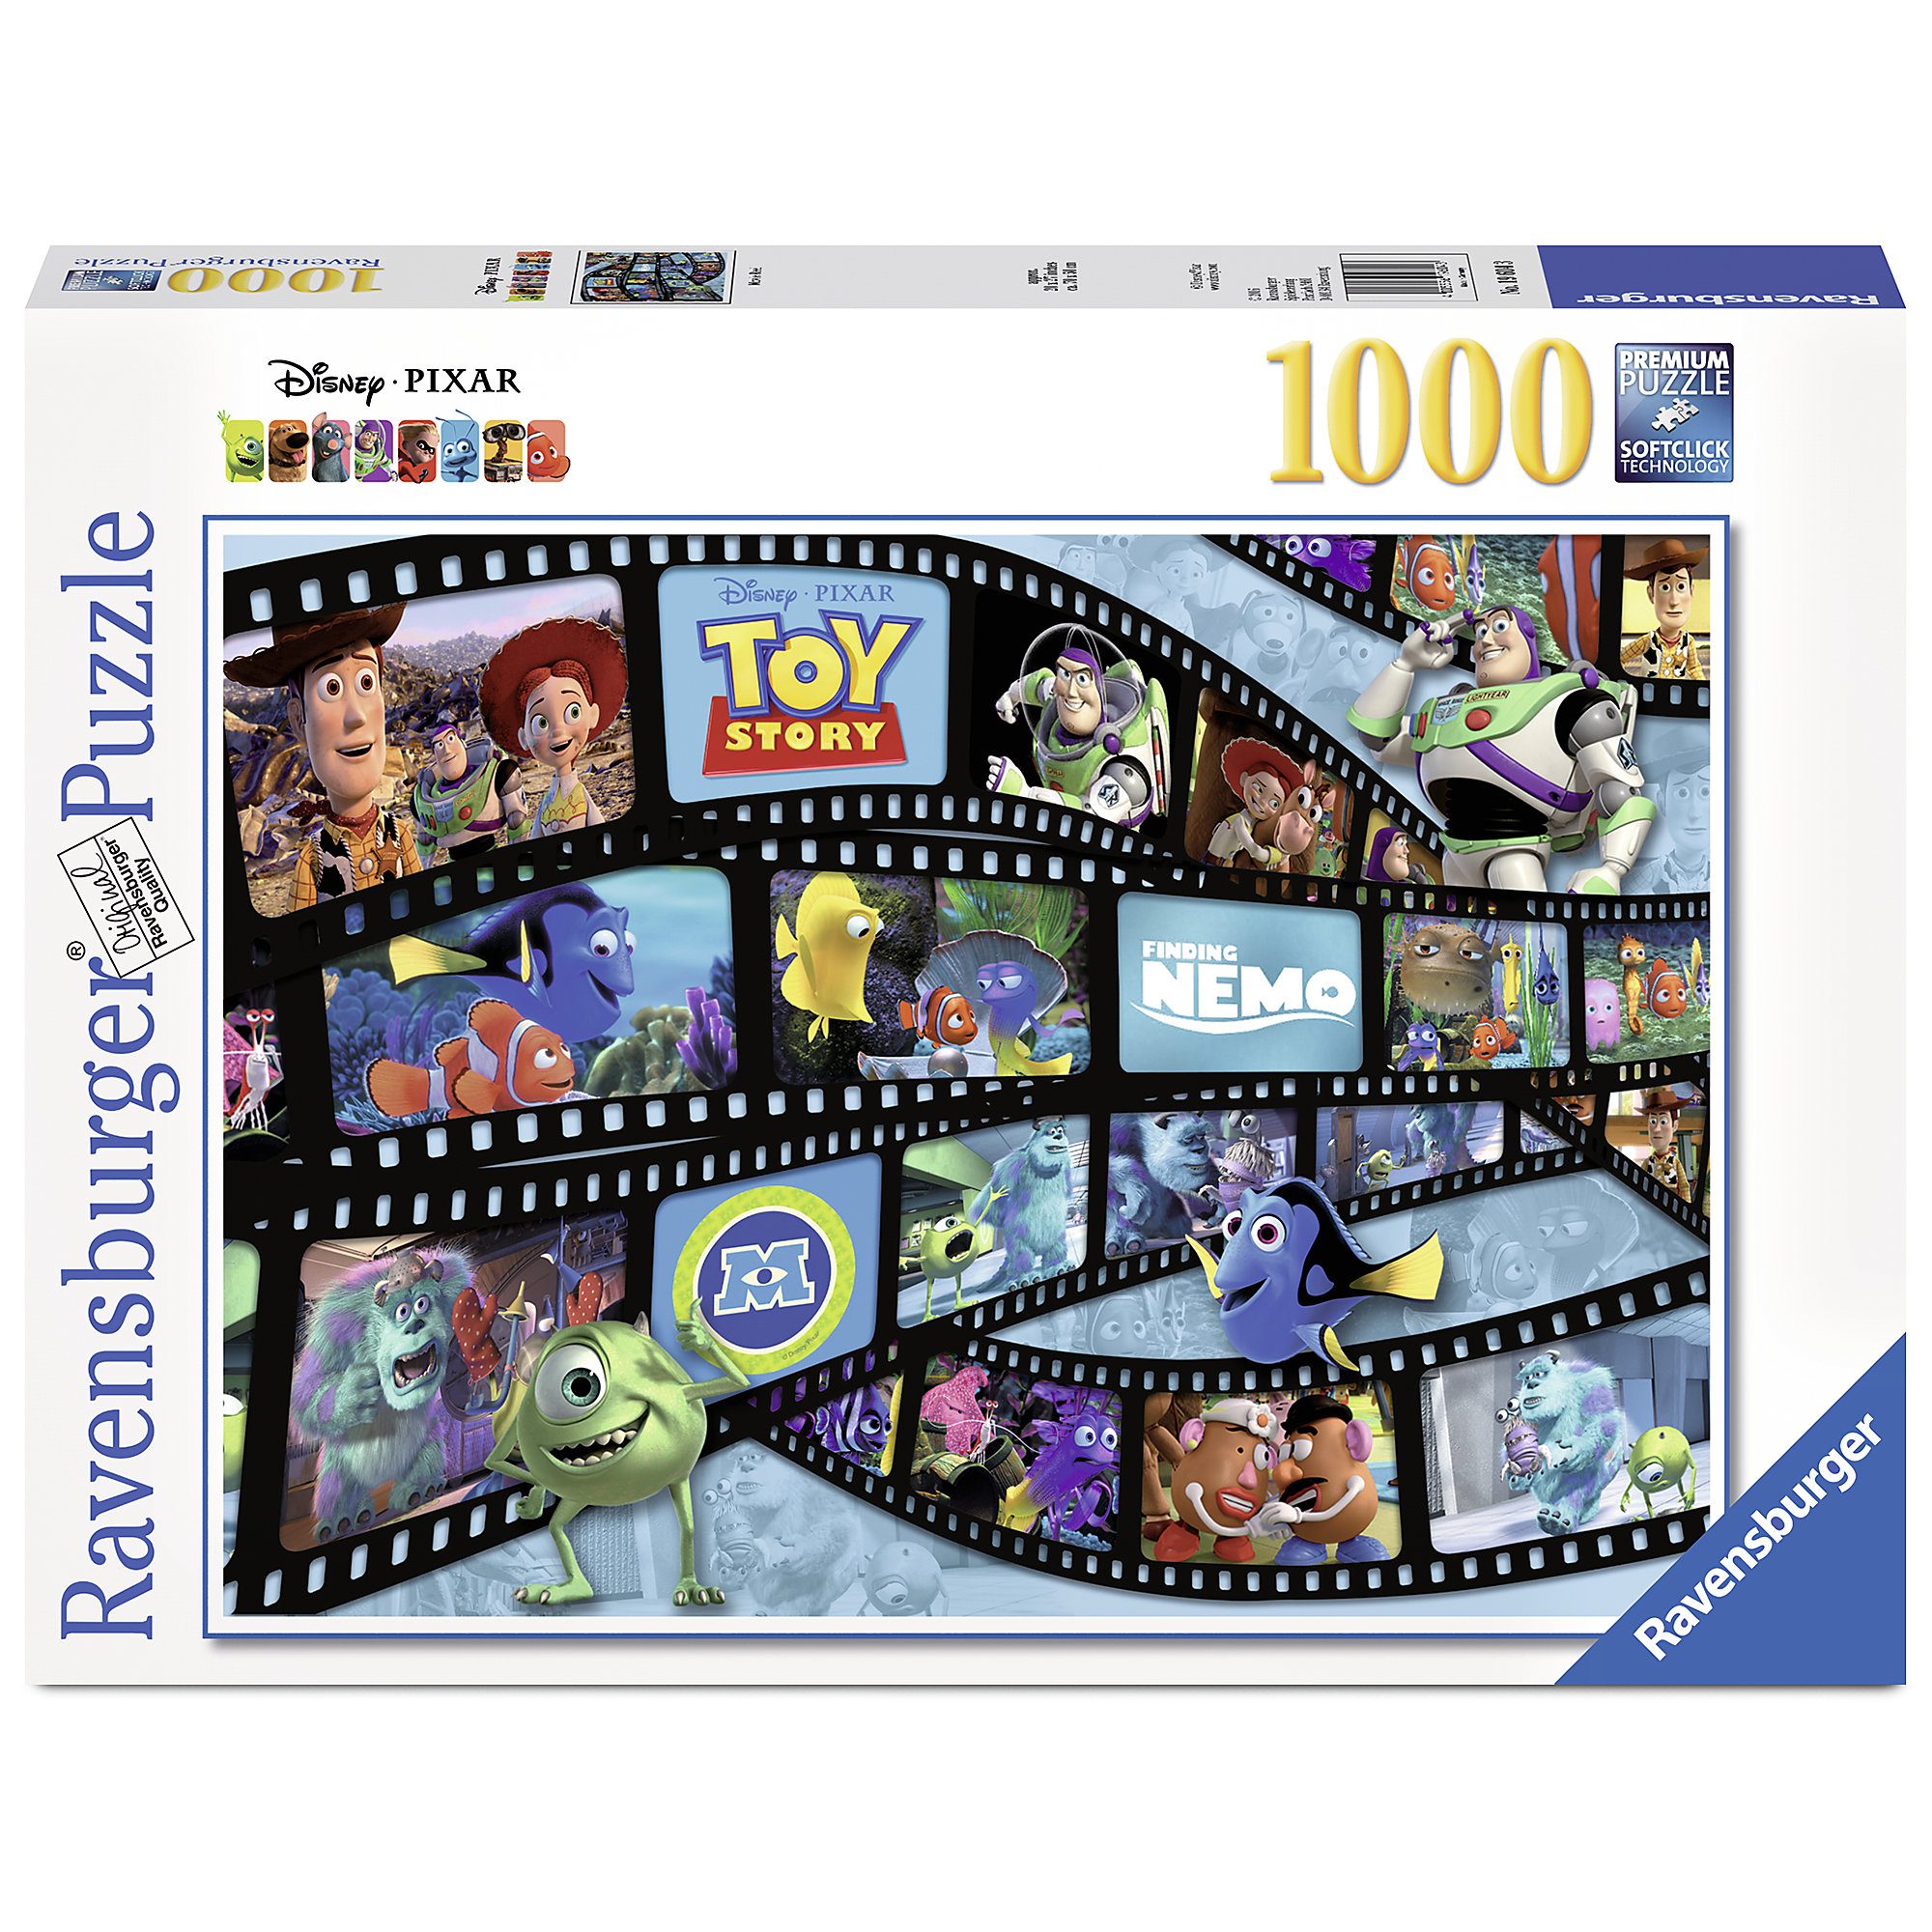 PIXAR Reel Puzzle by Ravensburger